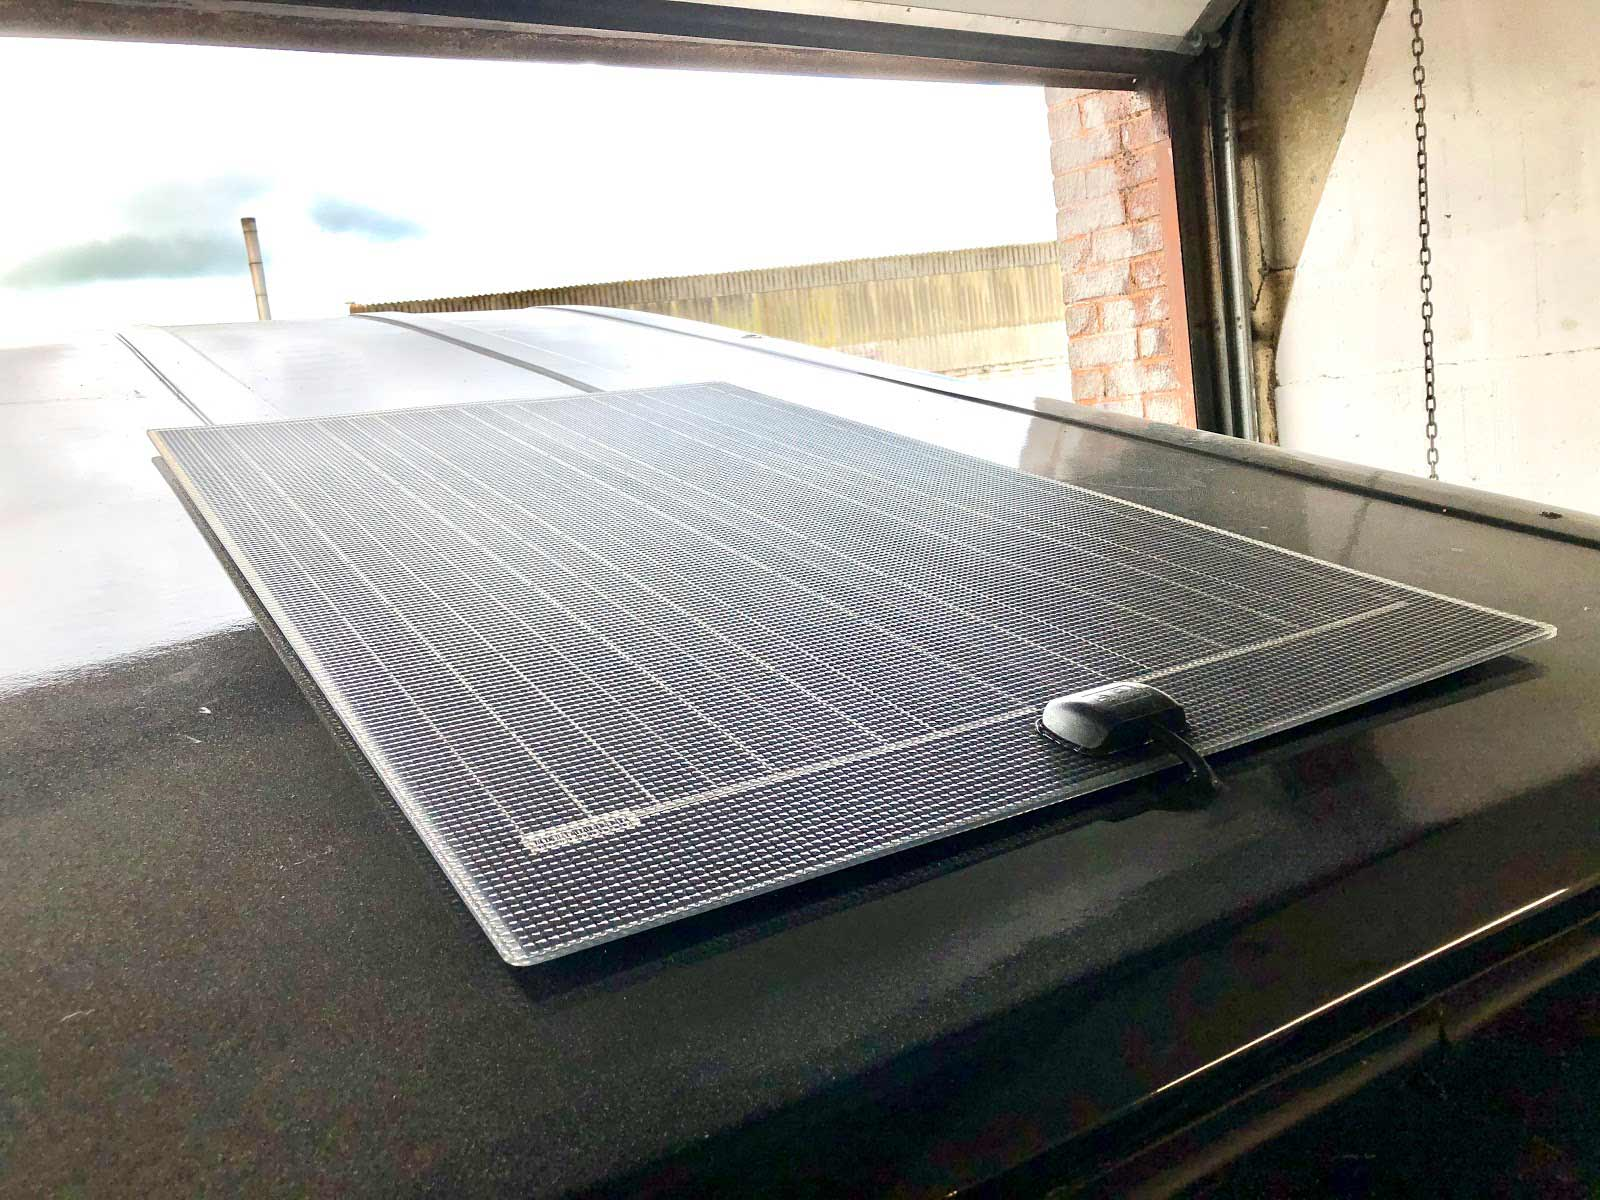 A solar panel on a campervan conversion